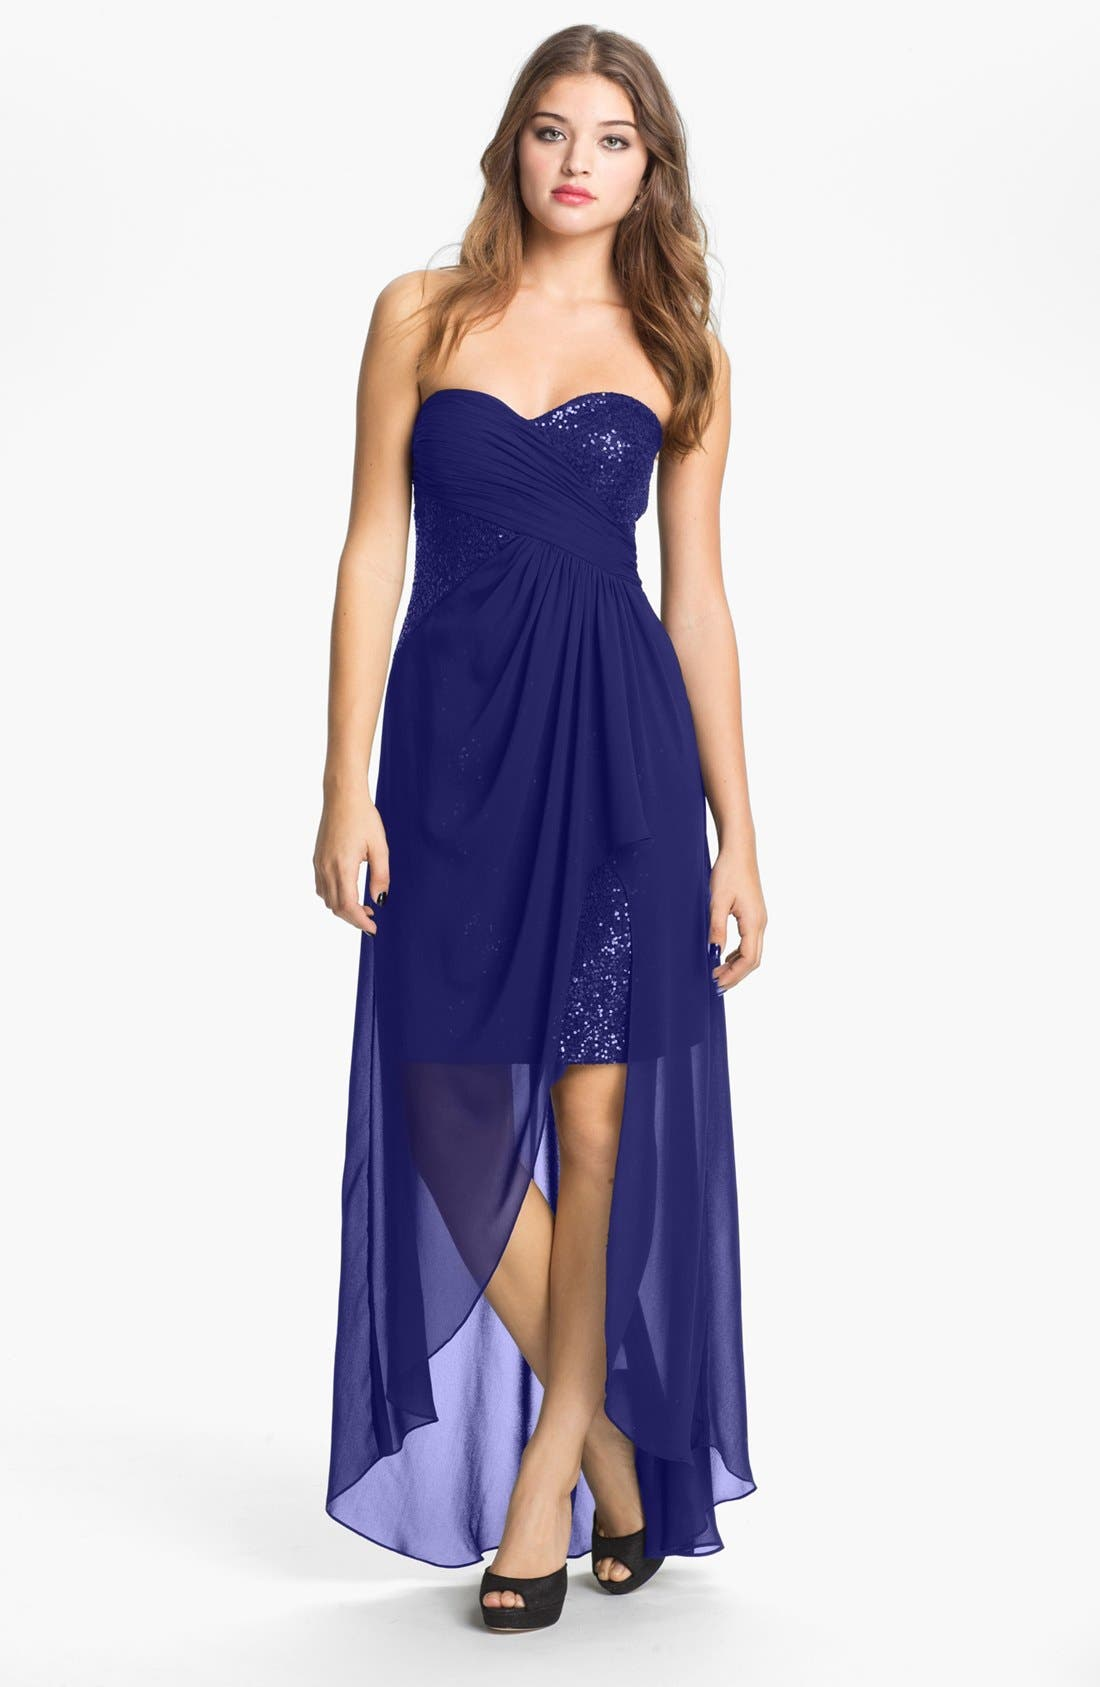 Alternate Image 1 Selected - Hailey by Adrianna Papell Strapless Sequin Chiffon Overlay Gown (Online Only)